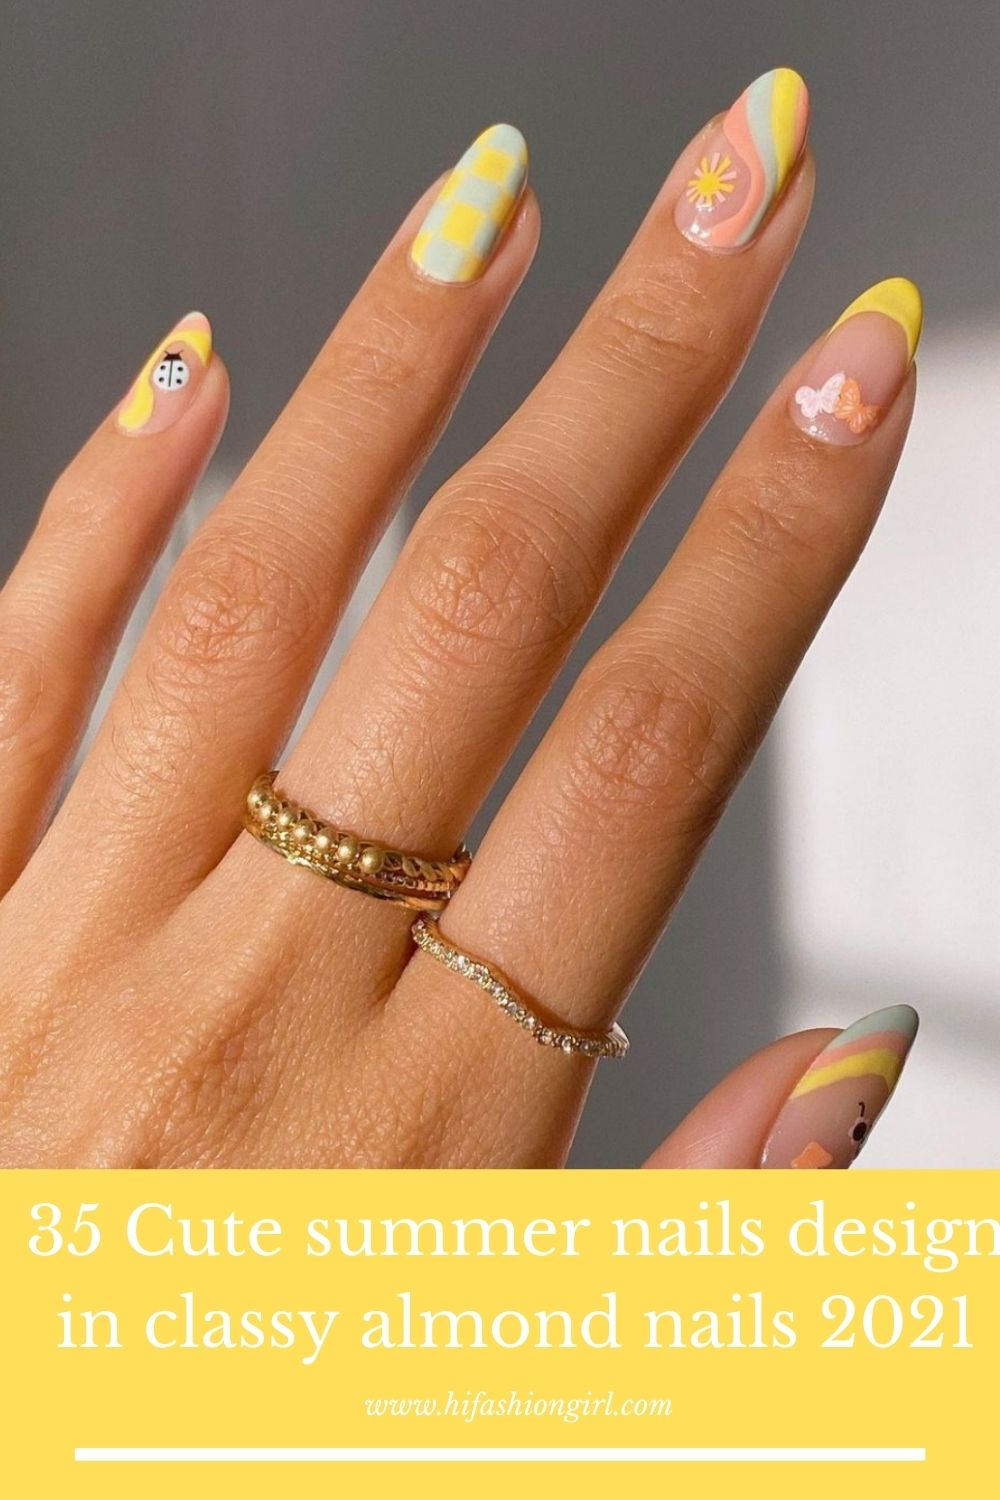 Trendy almond nail design for Summer nails colors 2021!